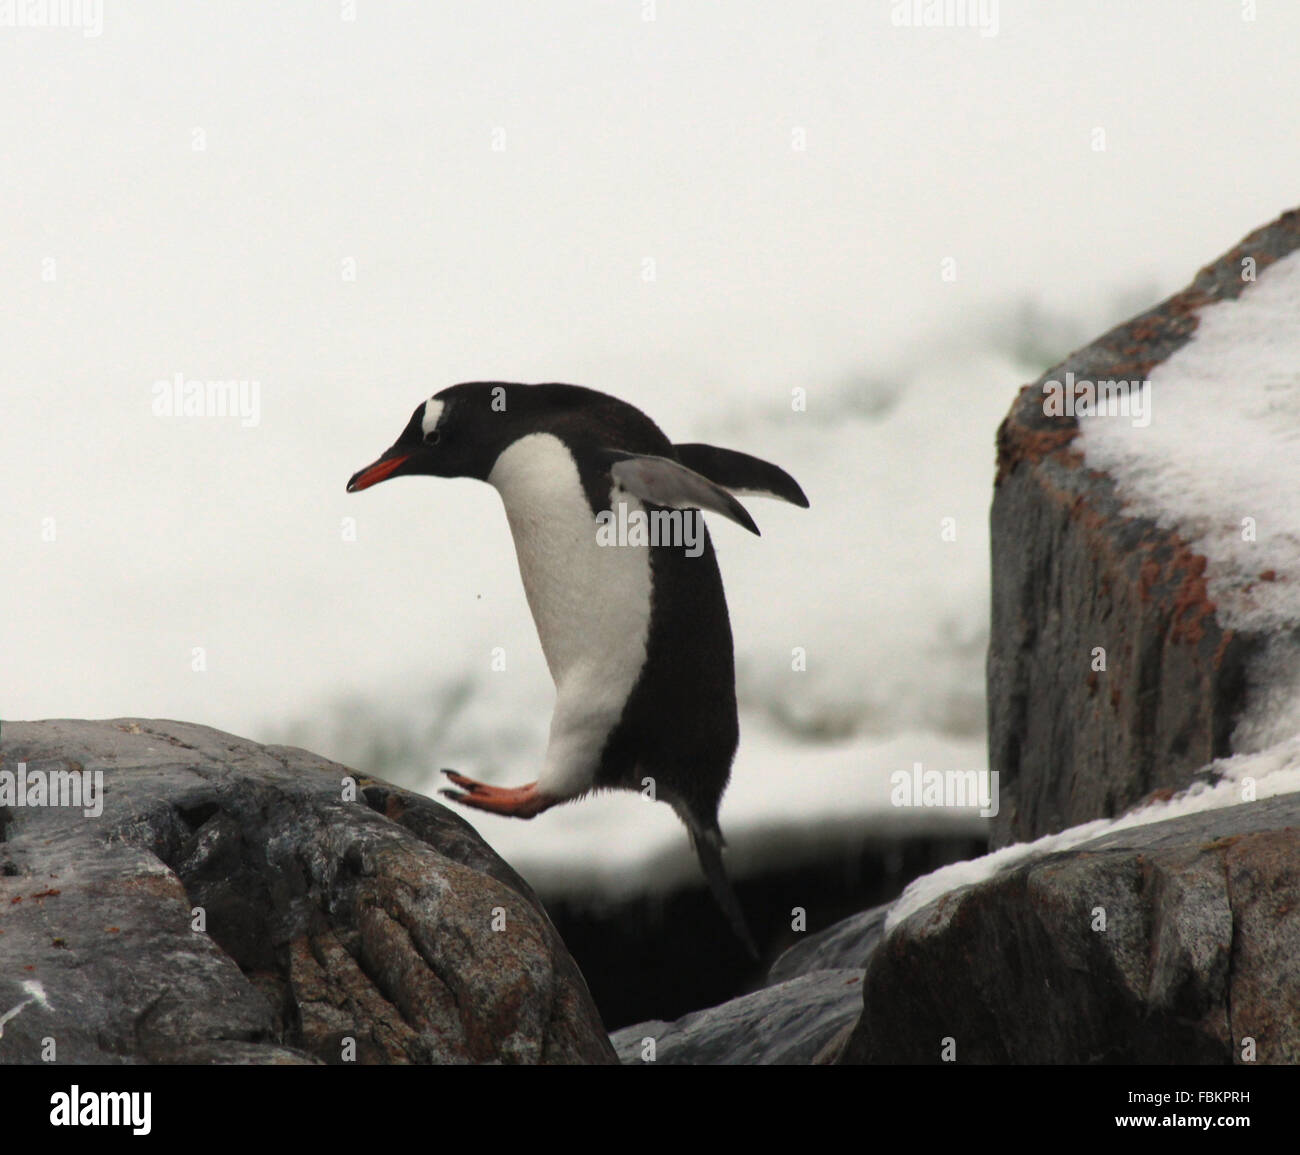 a gentoo penguin jumping from a rock in Antarctica - Stock Image